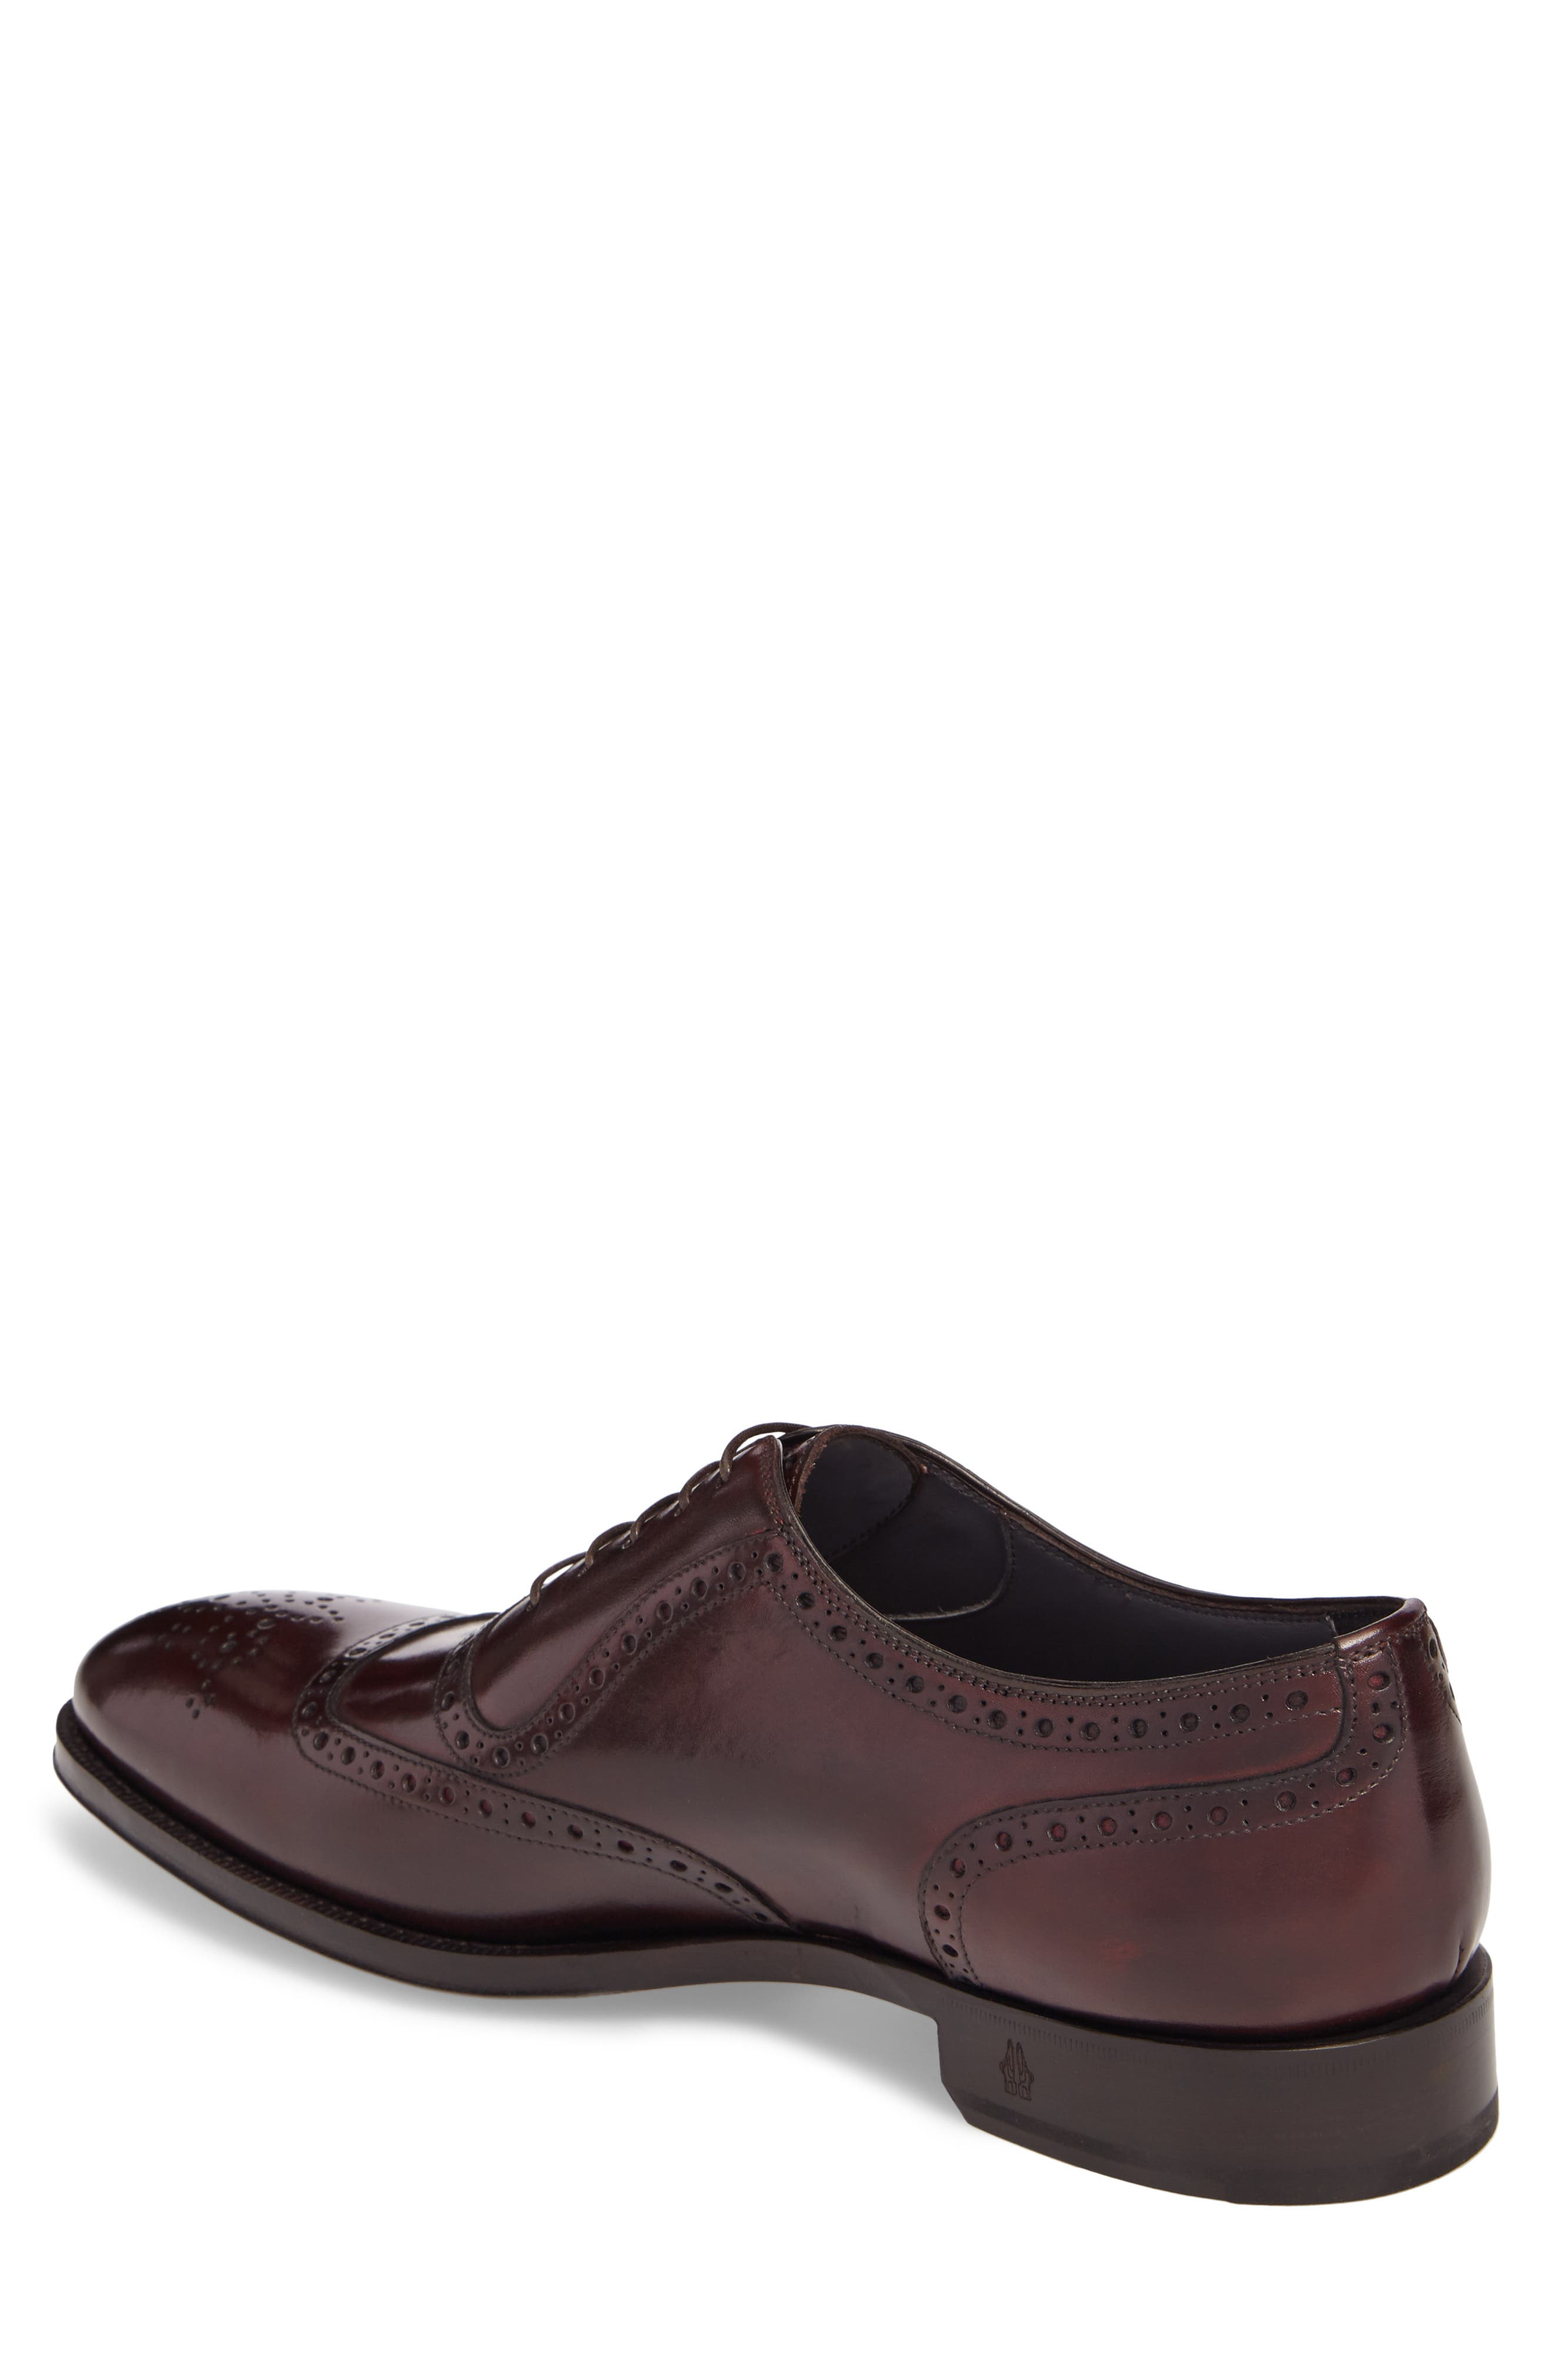 Medallion Toe Oxford,                             Alternate thumbnail 2, color,                             Anima Leather